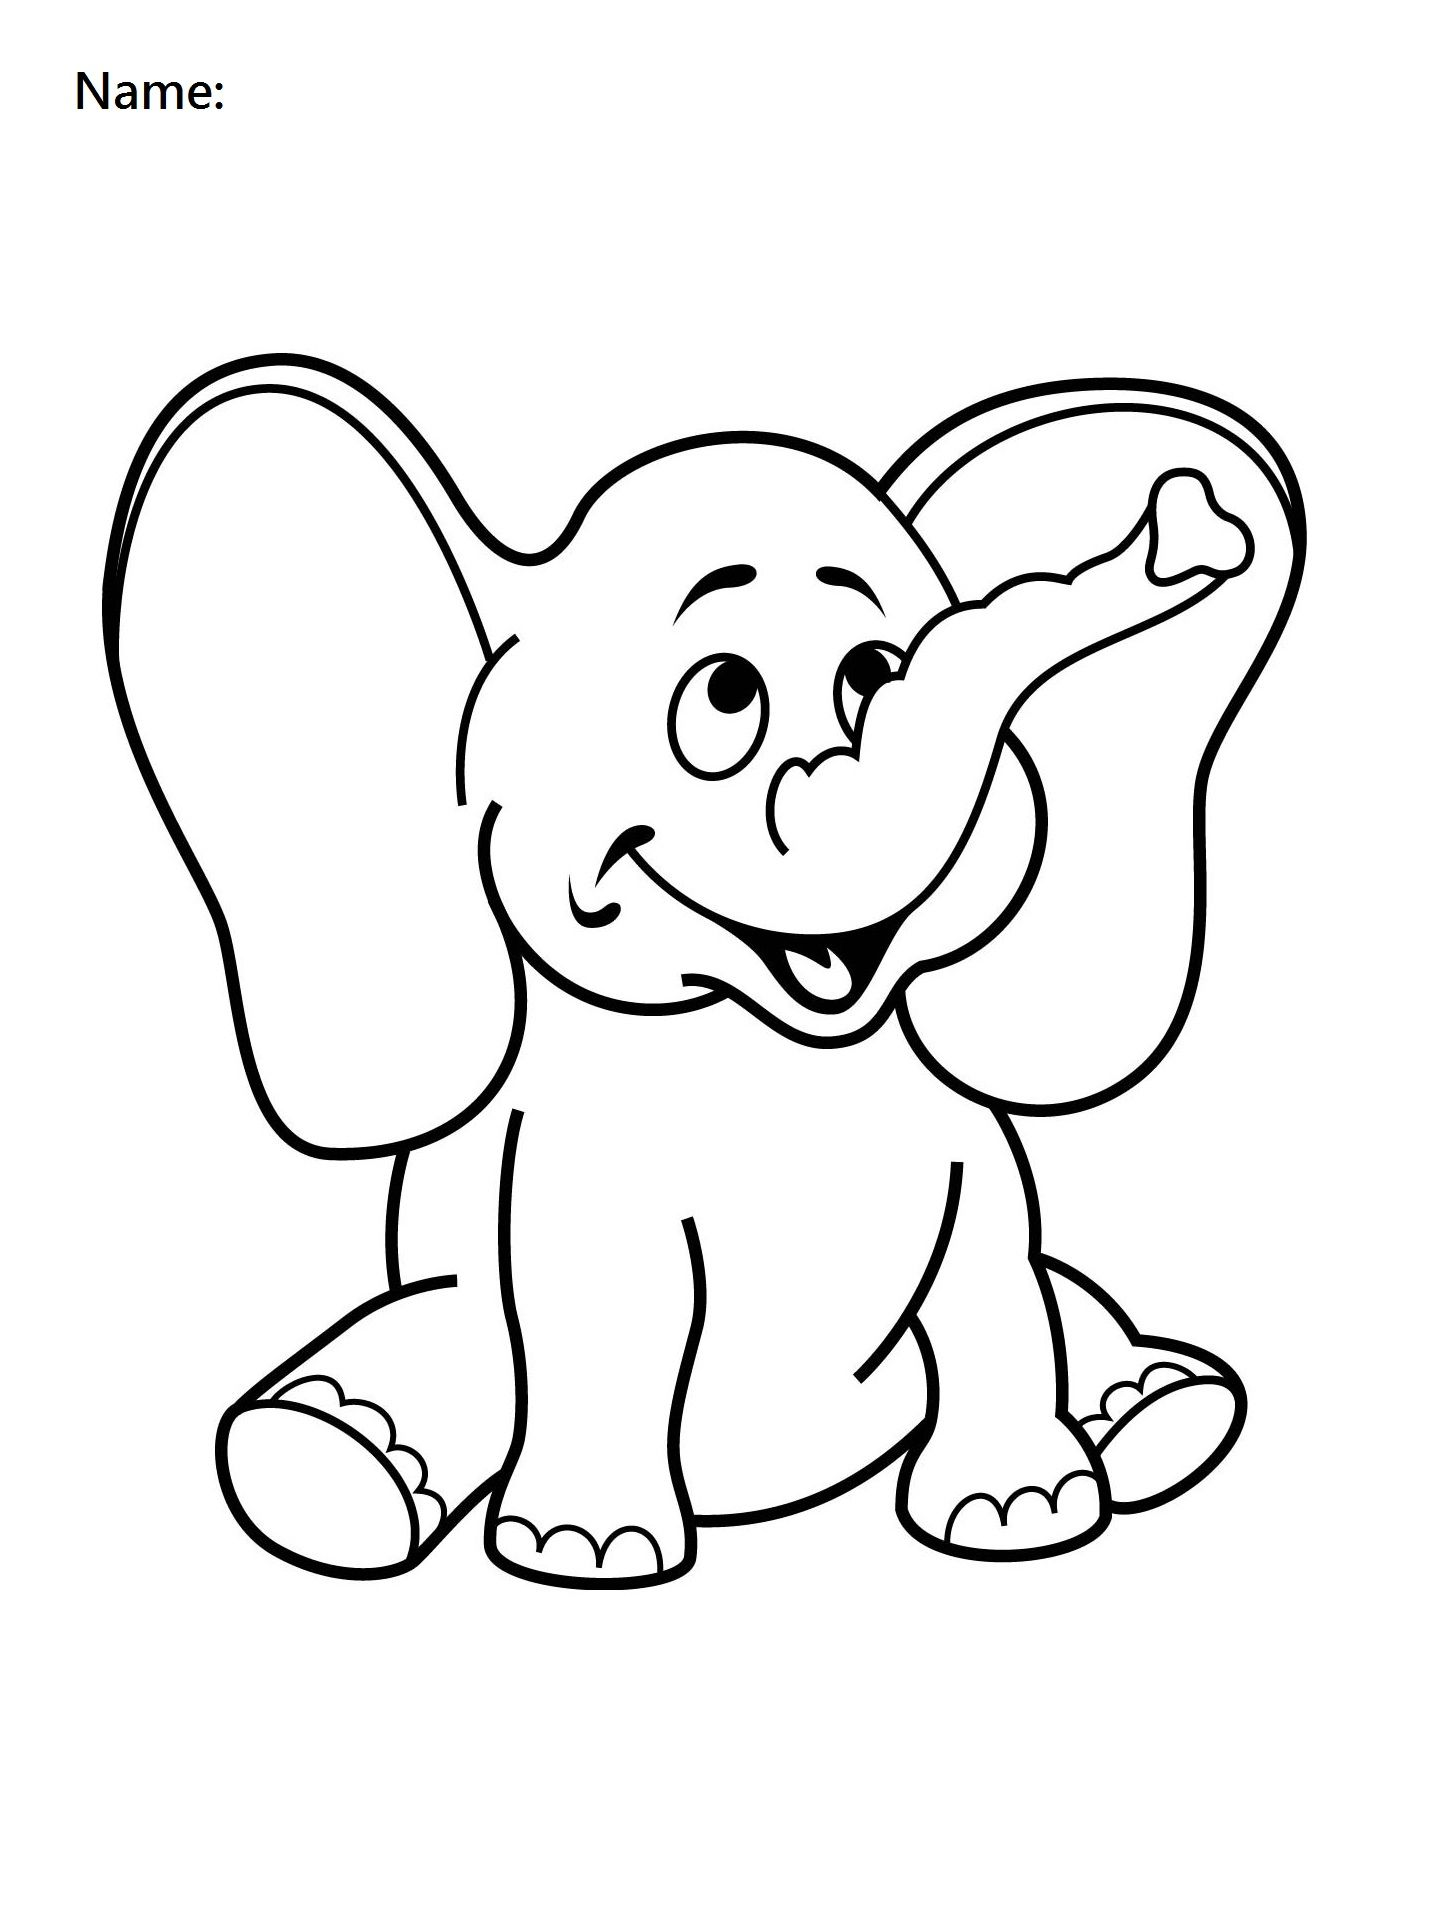 4 Year Old Worksheets Printable Coloring Elephant